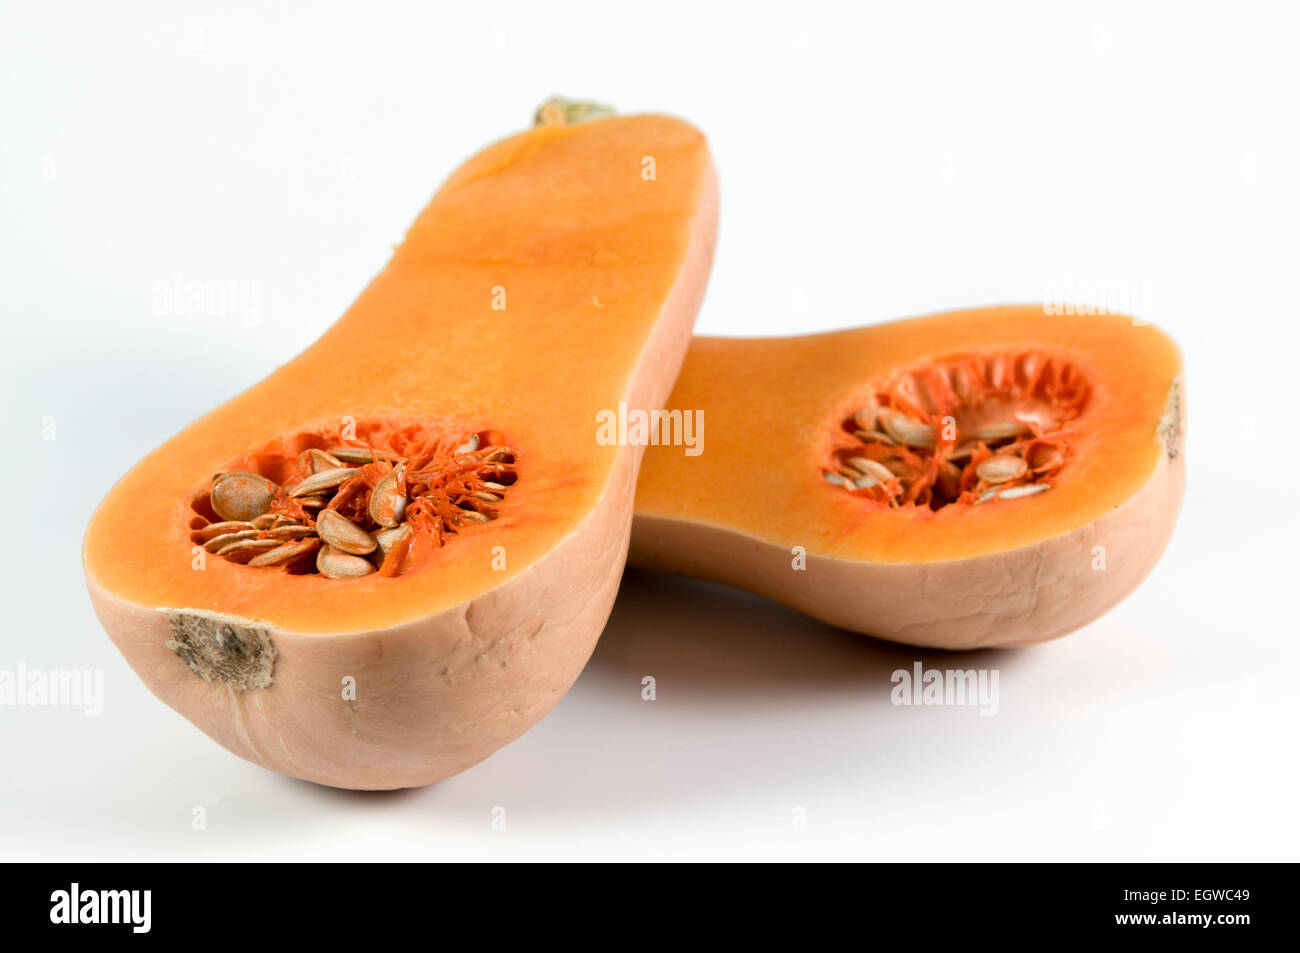 Butternut squash cut in half on white background Stock Photo